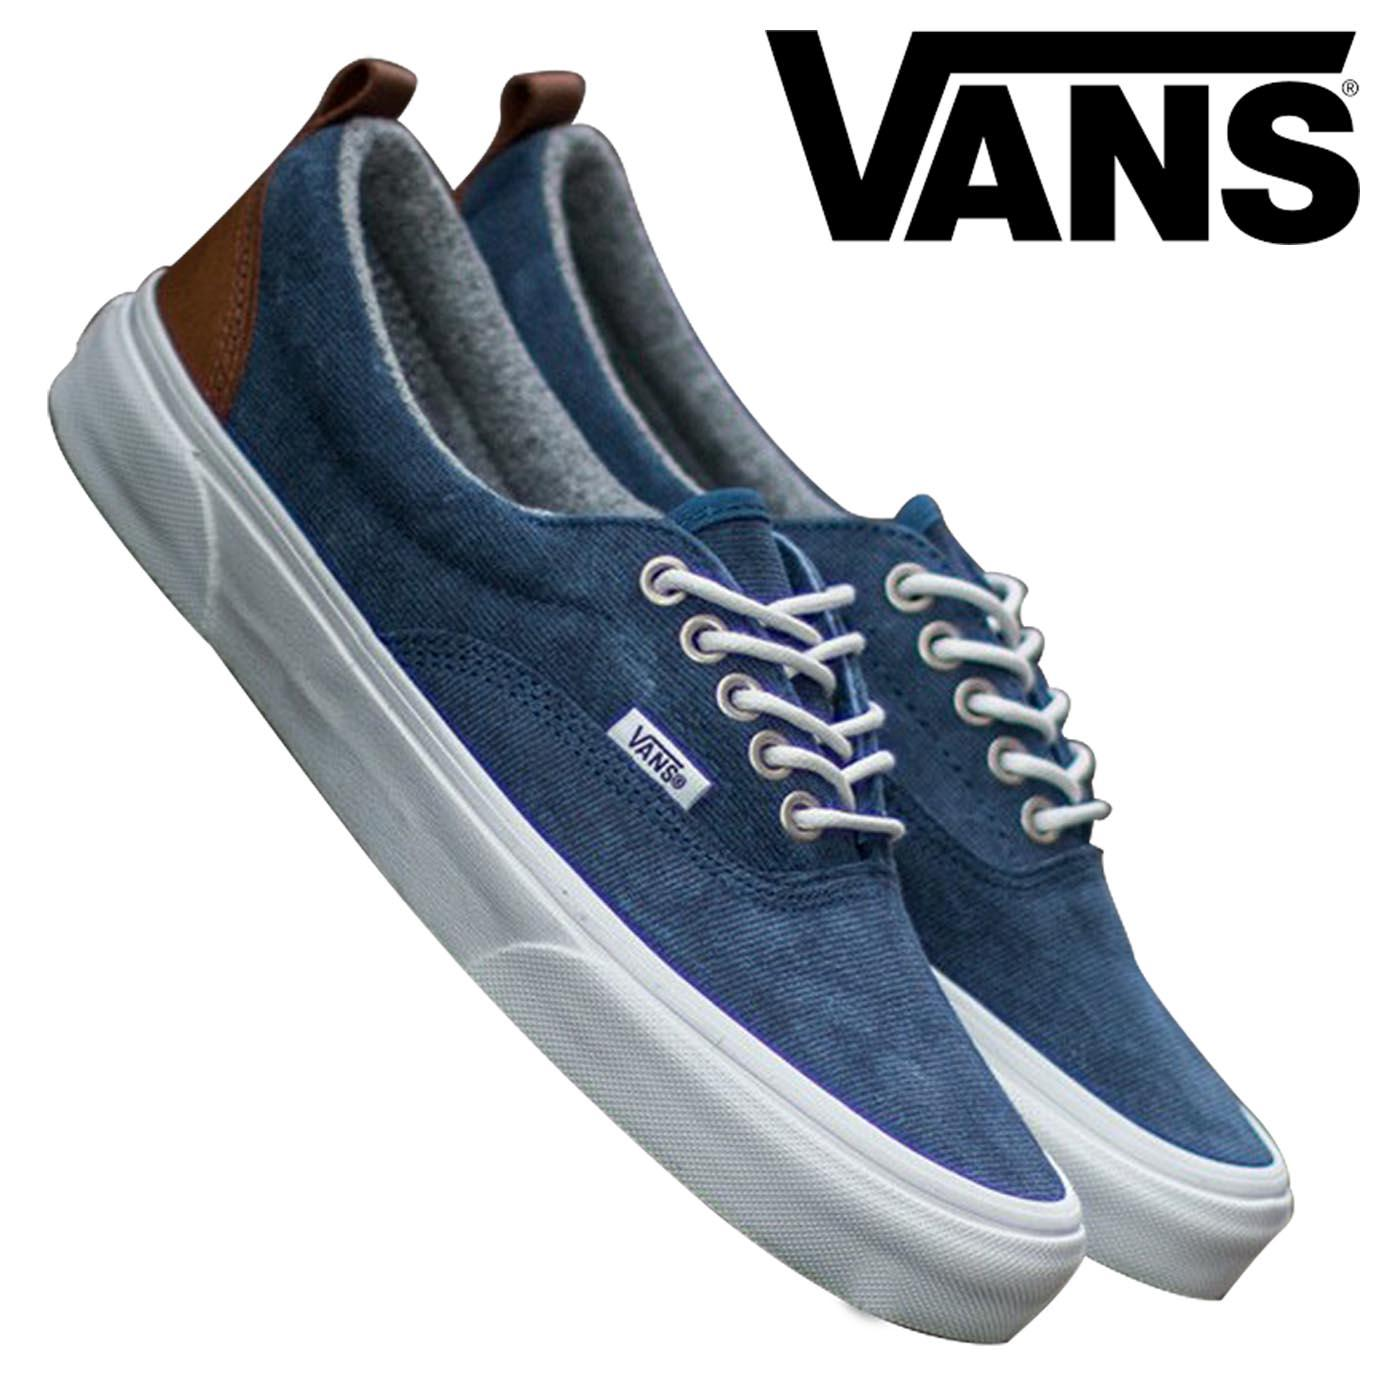 vans classic canvas shoes